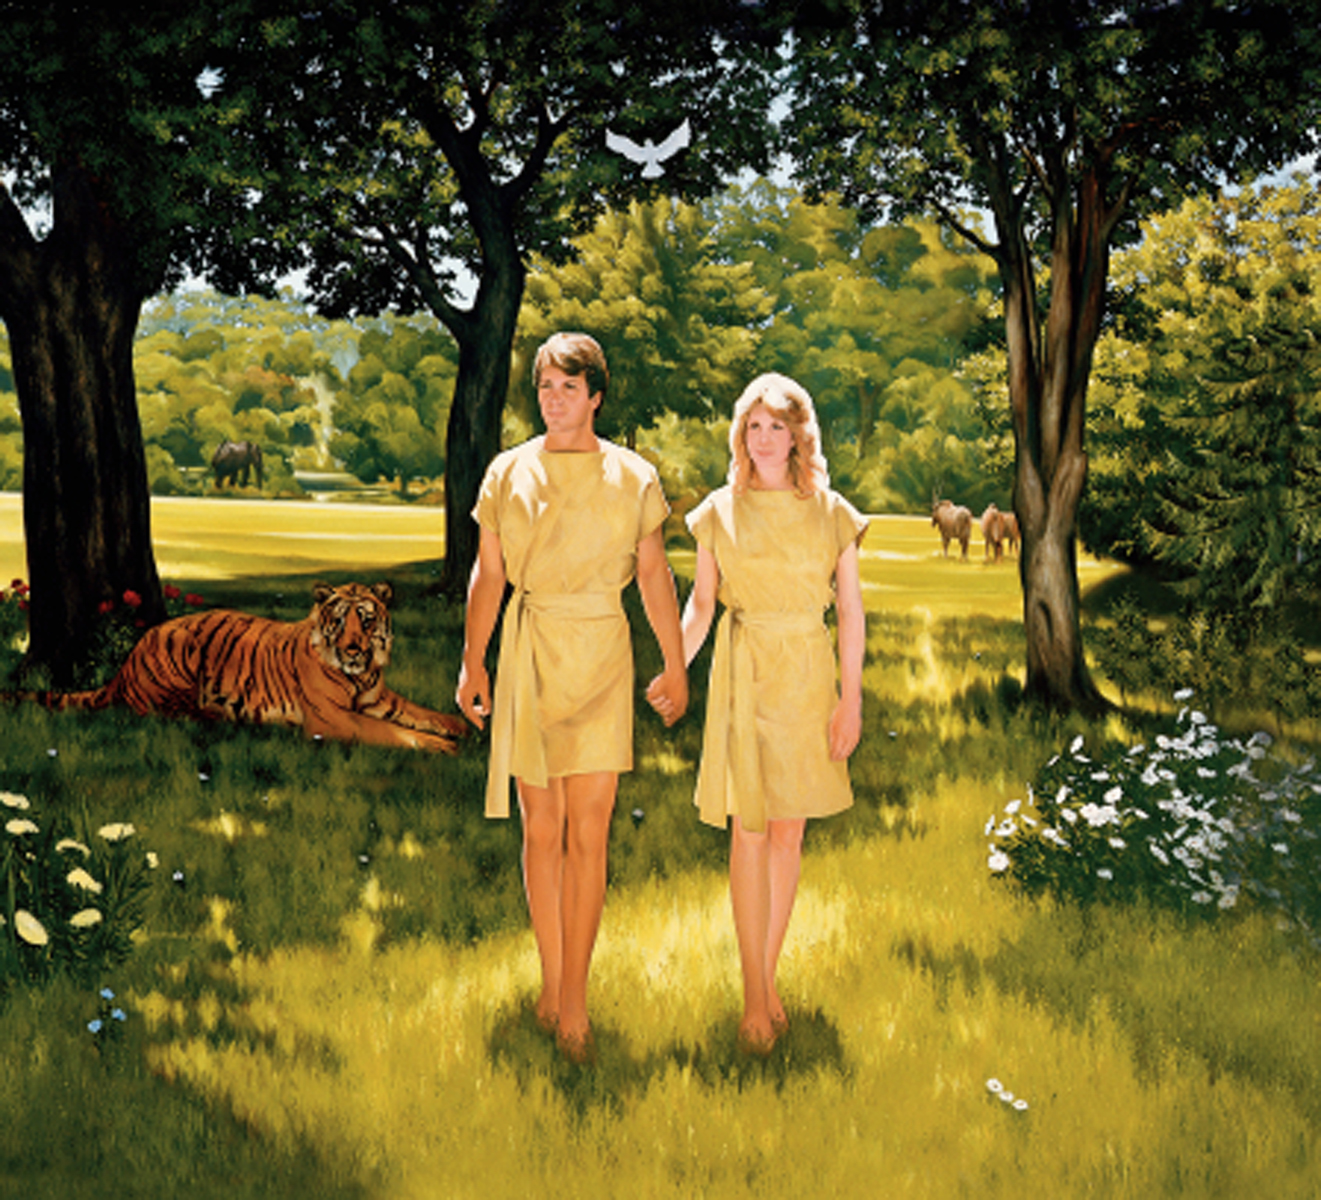 Adam and eve in garden of eden studying genesis chapter 2 10